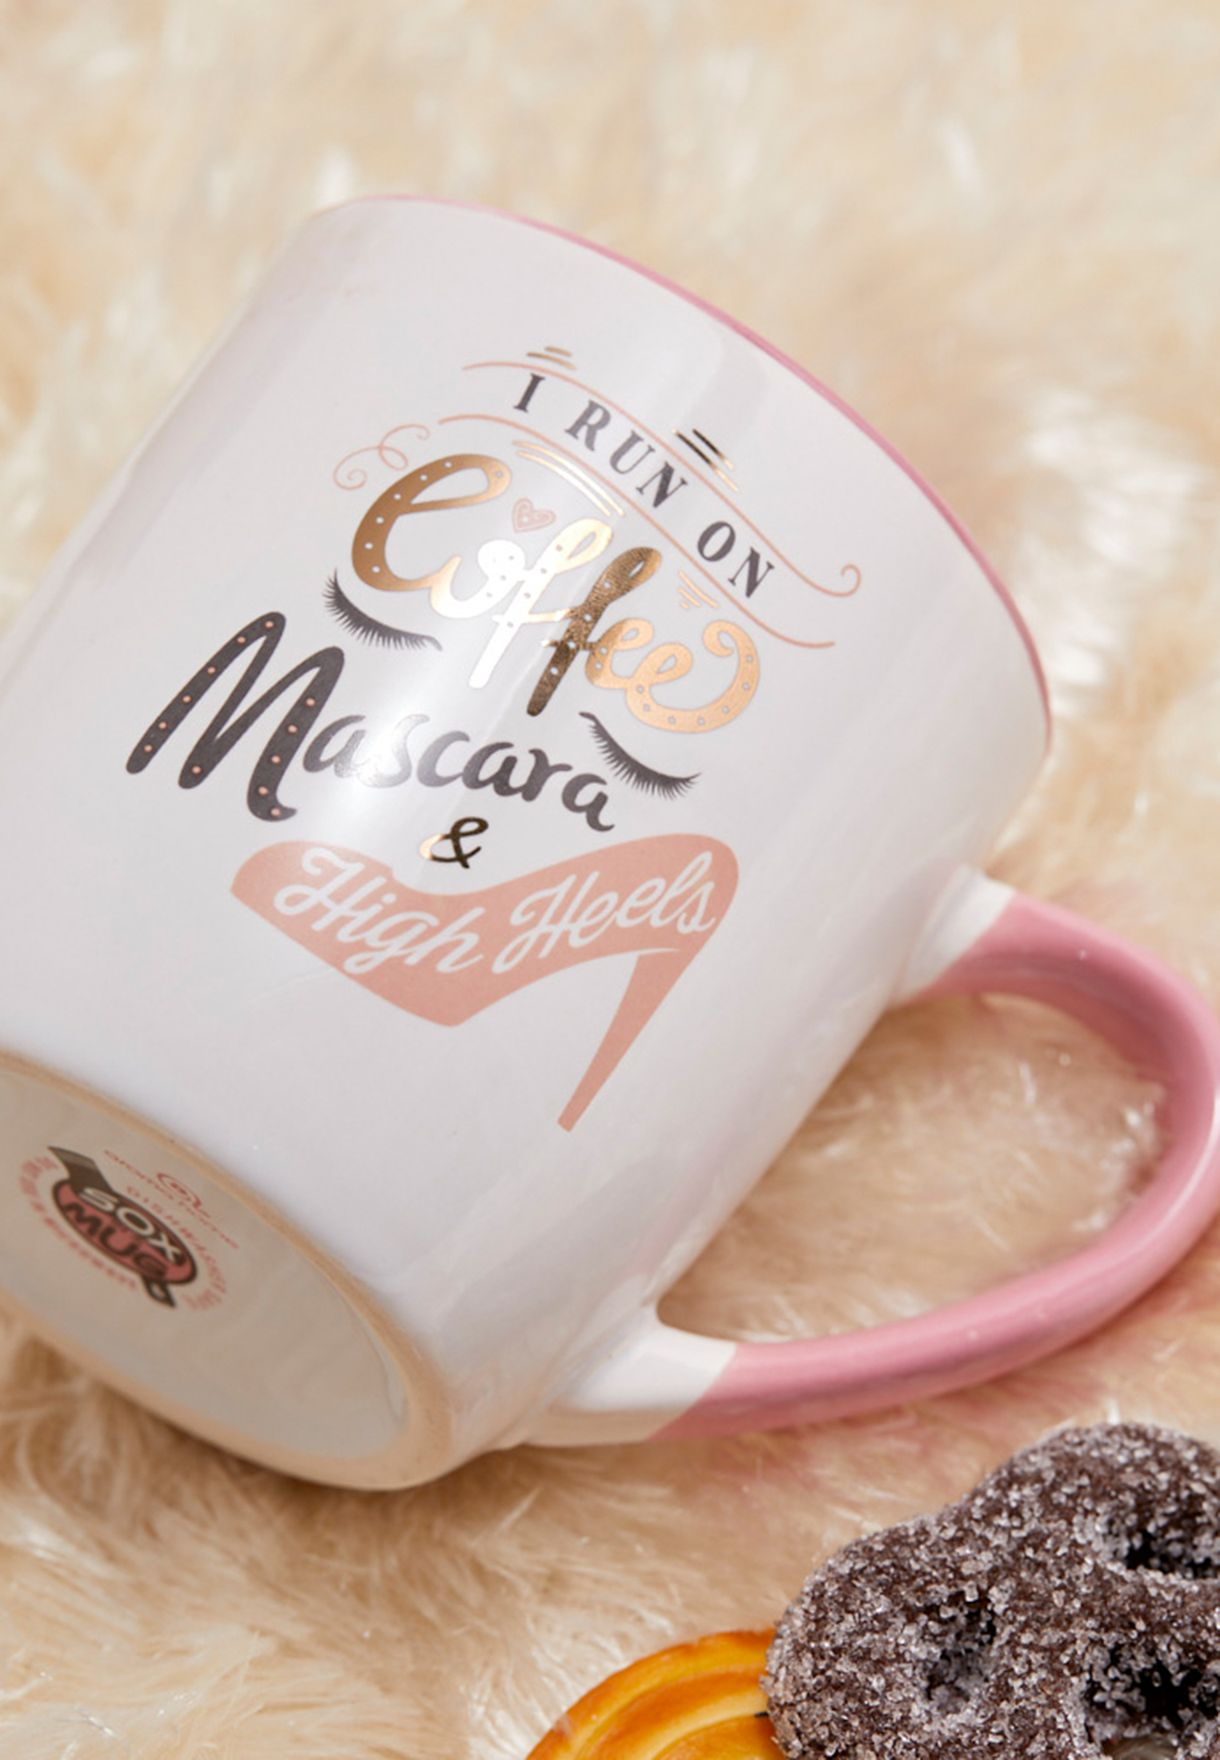 Coffee, Makeup, Heels Slogan Mug with Socks Gift Set